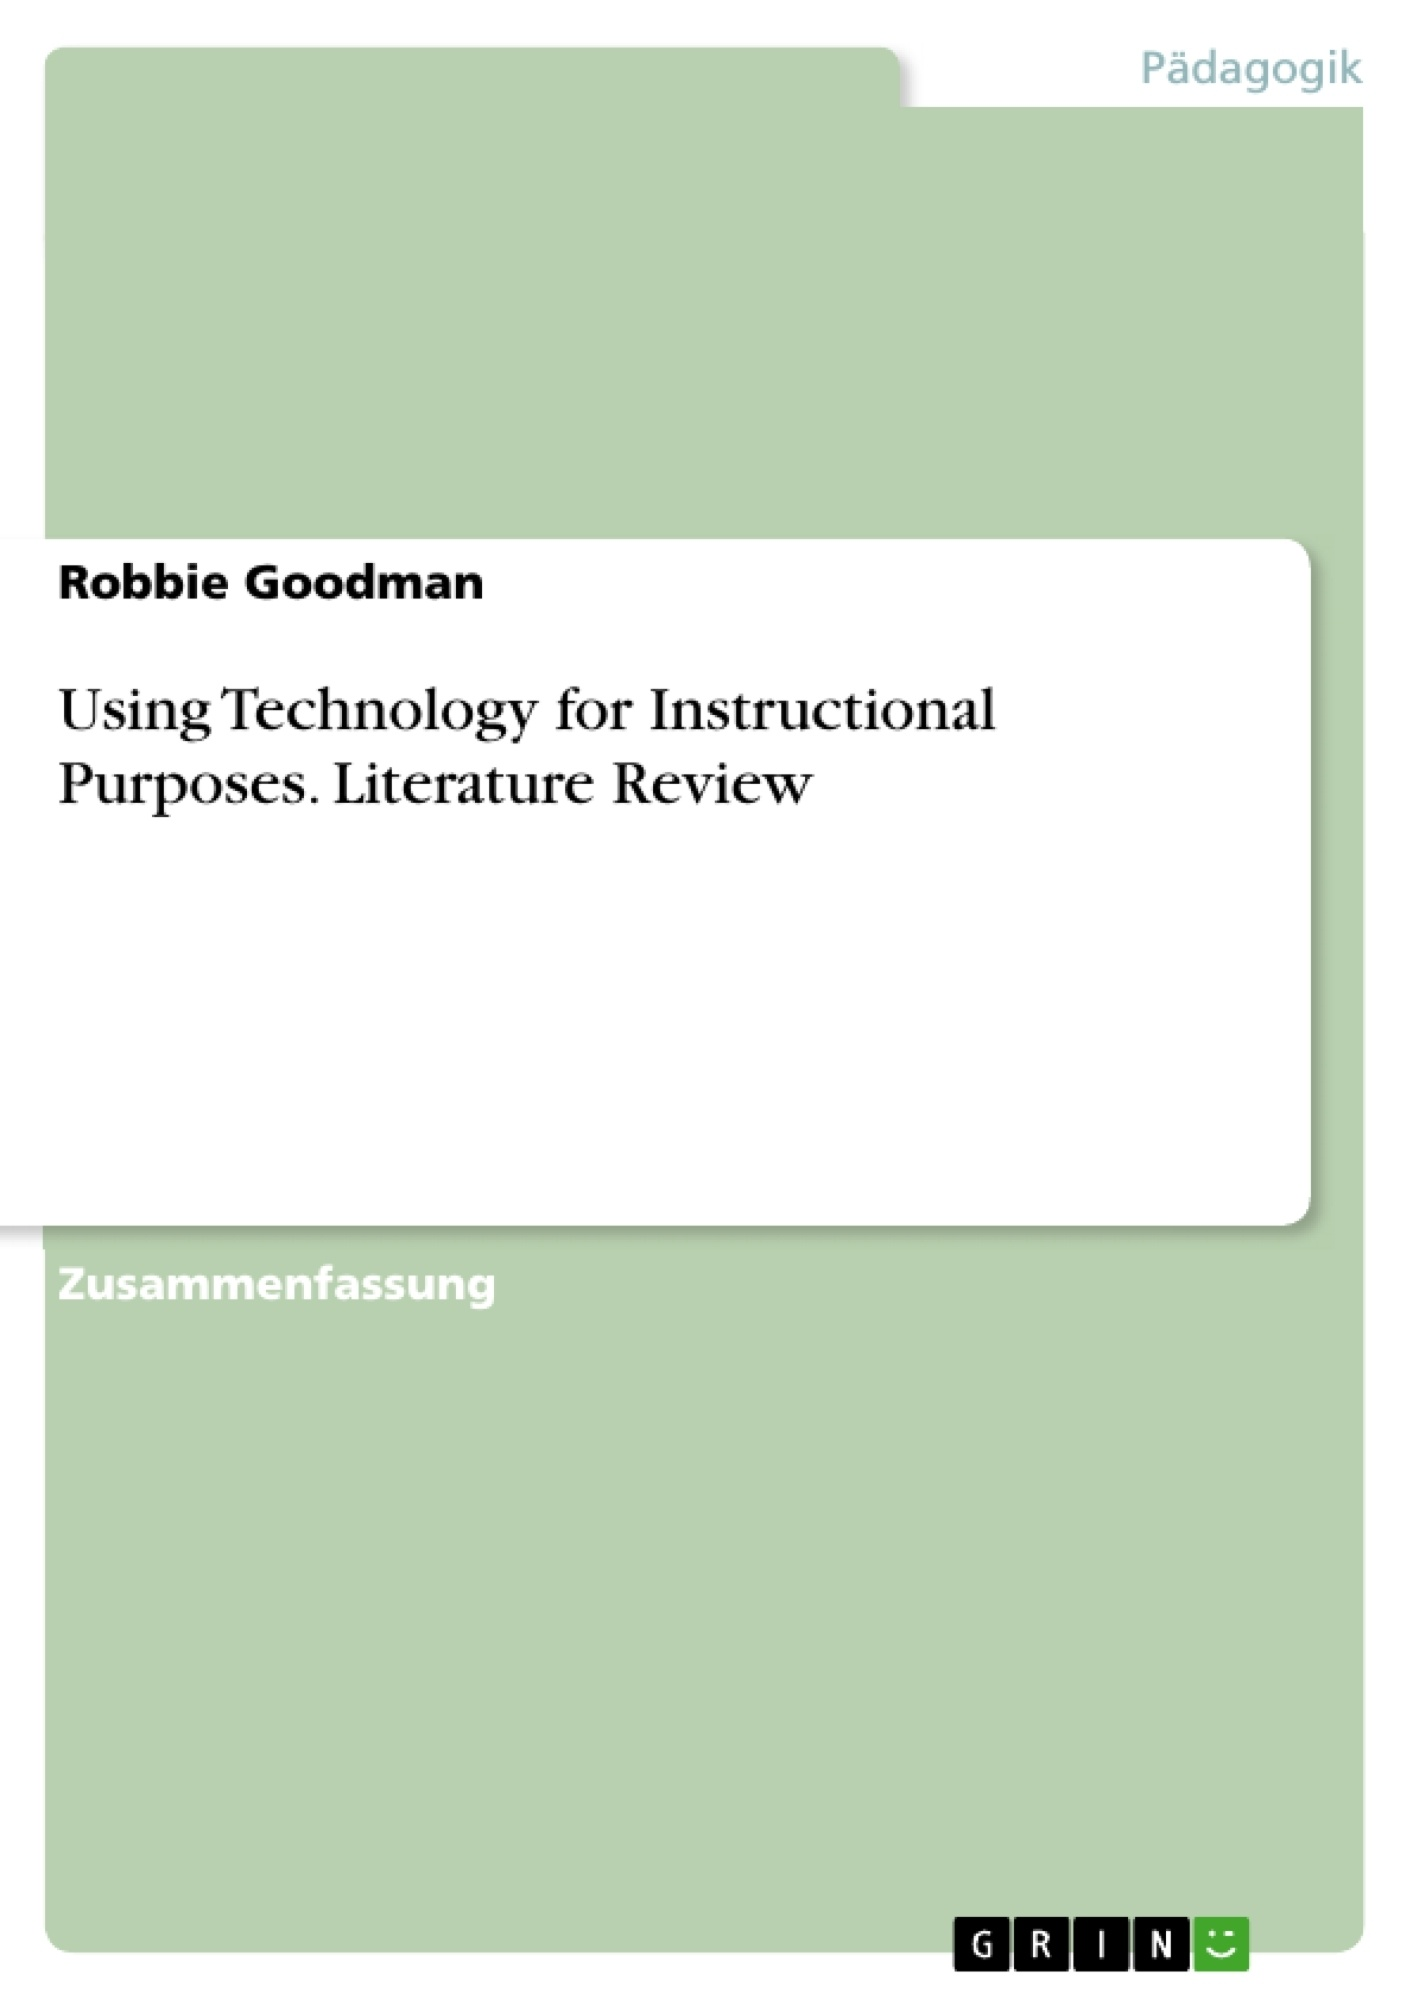 Titel: Using Technology for Instructional Purposes. Literature Review